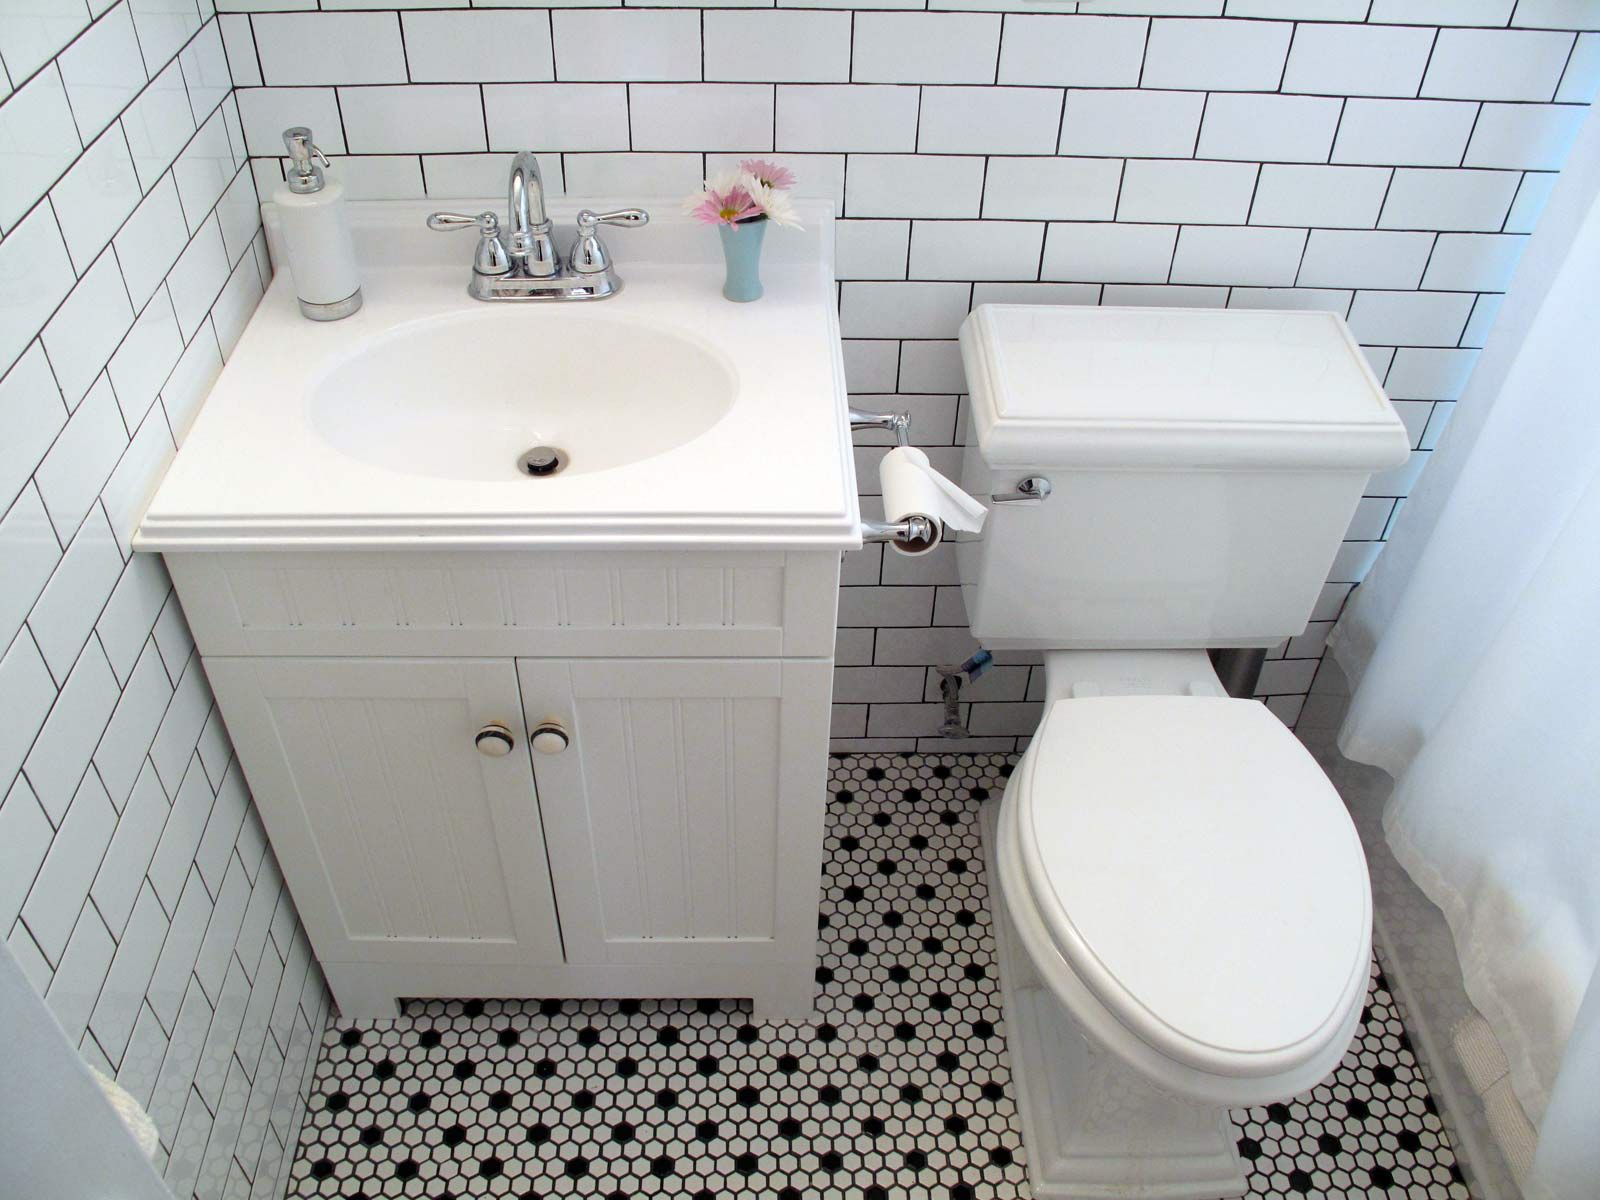 Vintage Black And White Floor Tile Bathroom Remodel Inspiration - Vintage wall mount bathroom sink for bathroom decor ideas